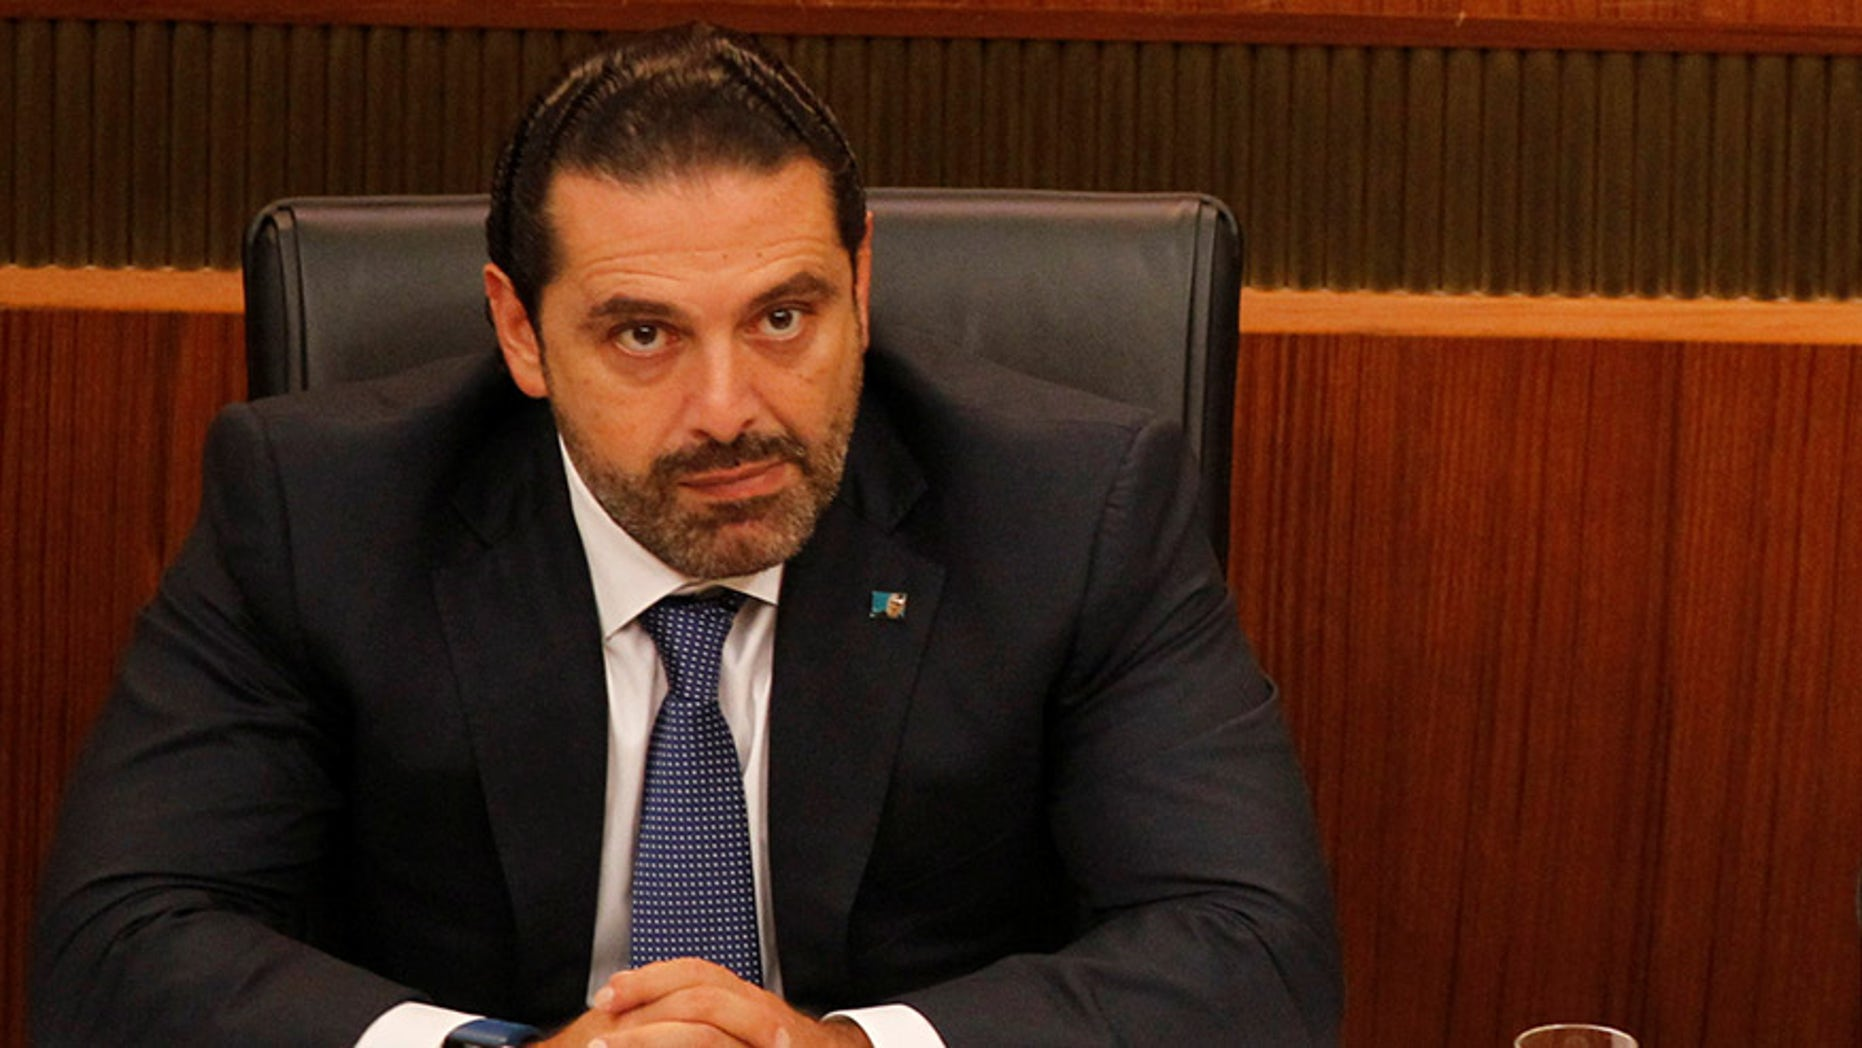 """Lebanese prime minister Saad Hariri slammed Iran and the Lebanese Hezbollah group for meddling in Arab affairs and says """"Iran's arms in the region will be cut off."""""""